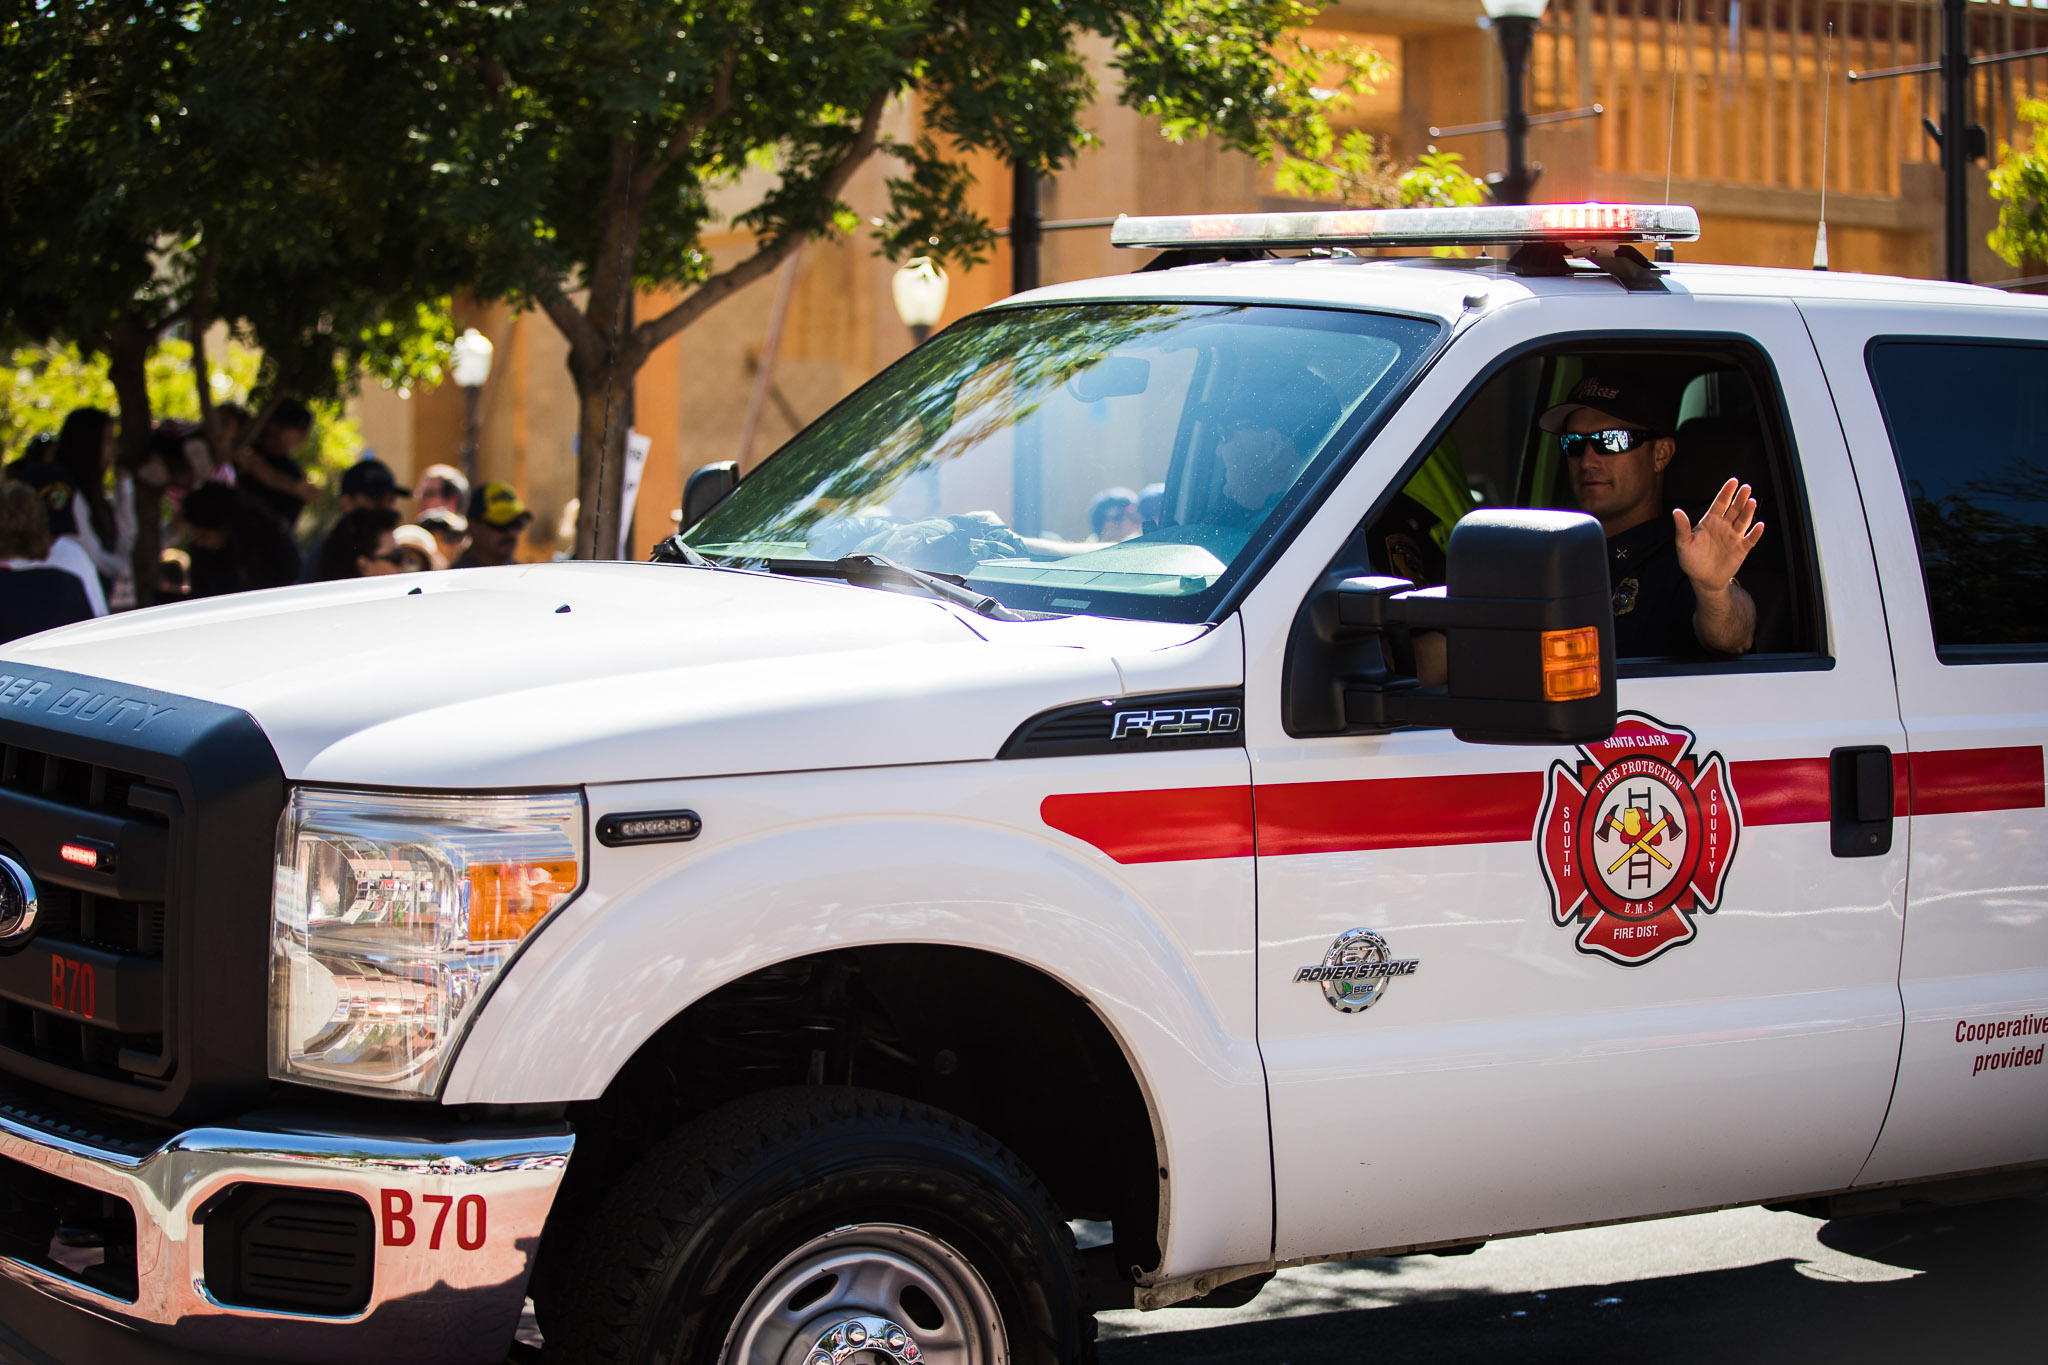 Archer_Inspired_Photography_Morgan_Hill_California_4th_of_july_parade-44.jpg